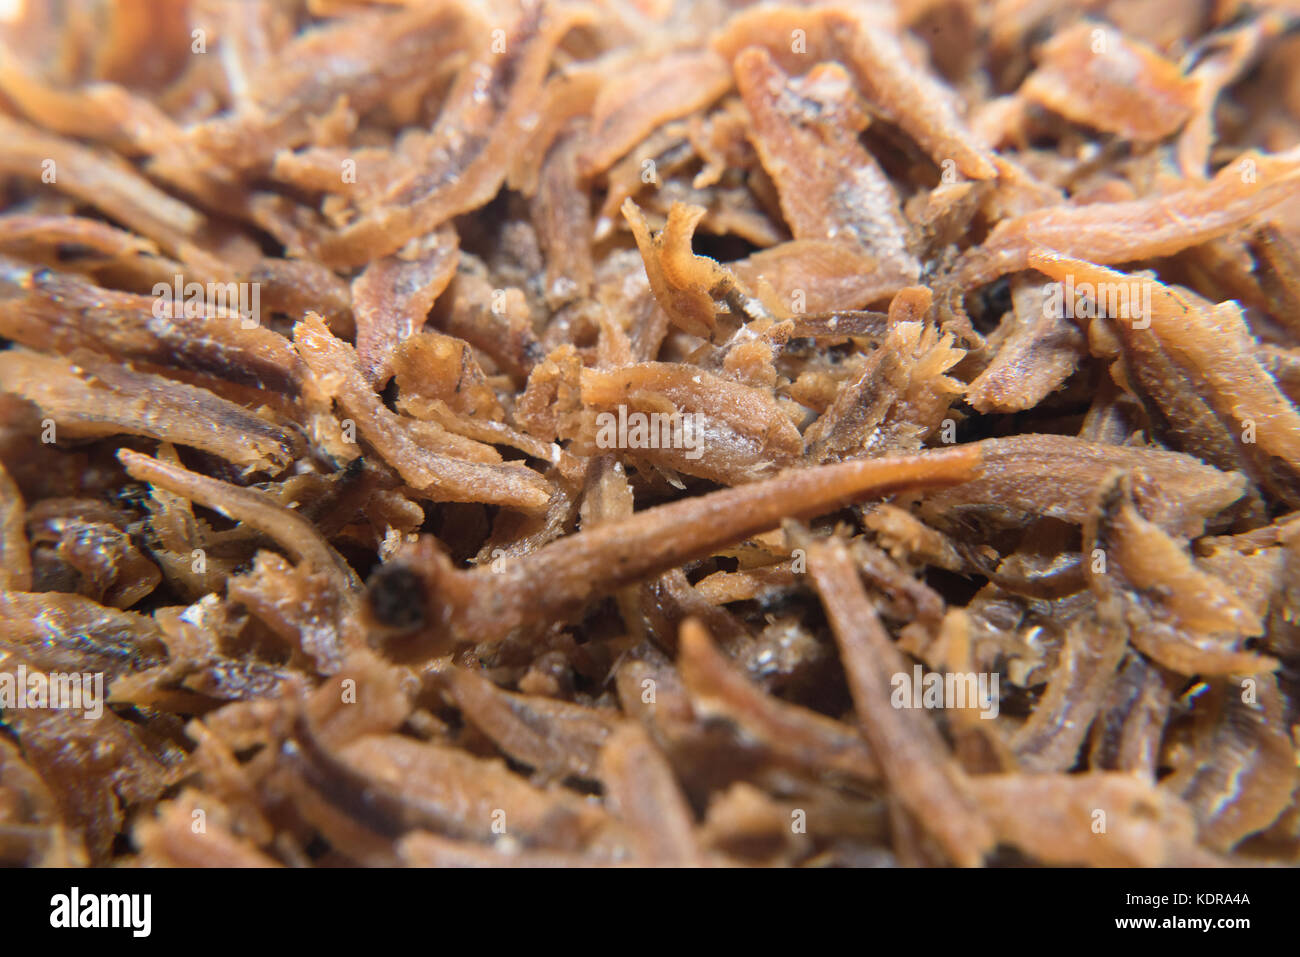 close up of fried anchovies for background - Stock Image